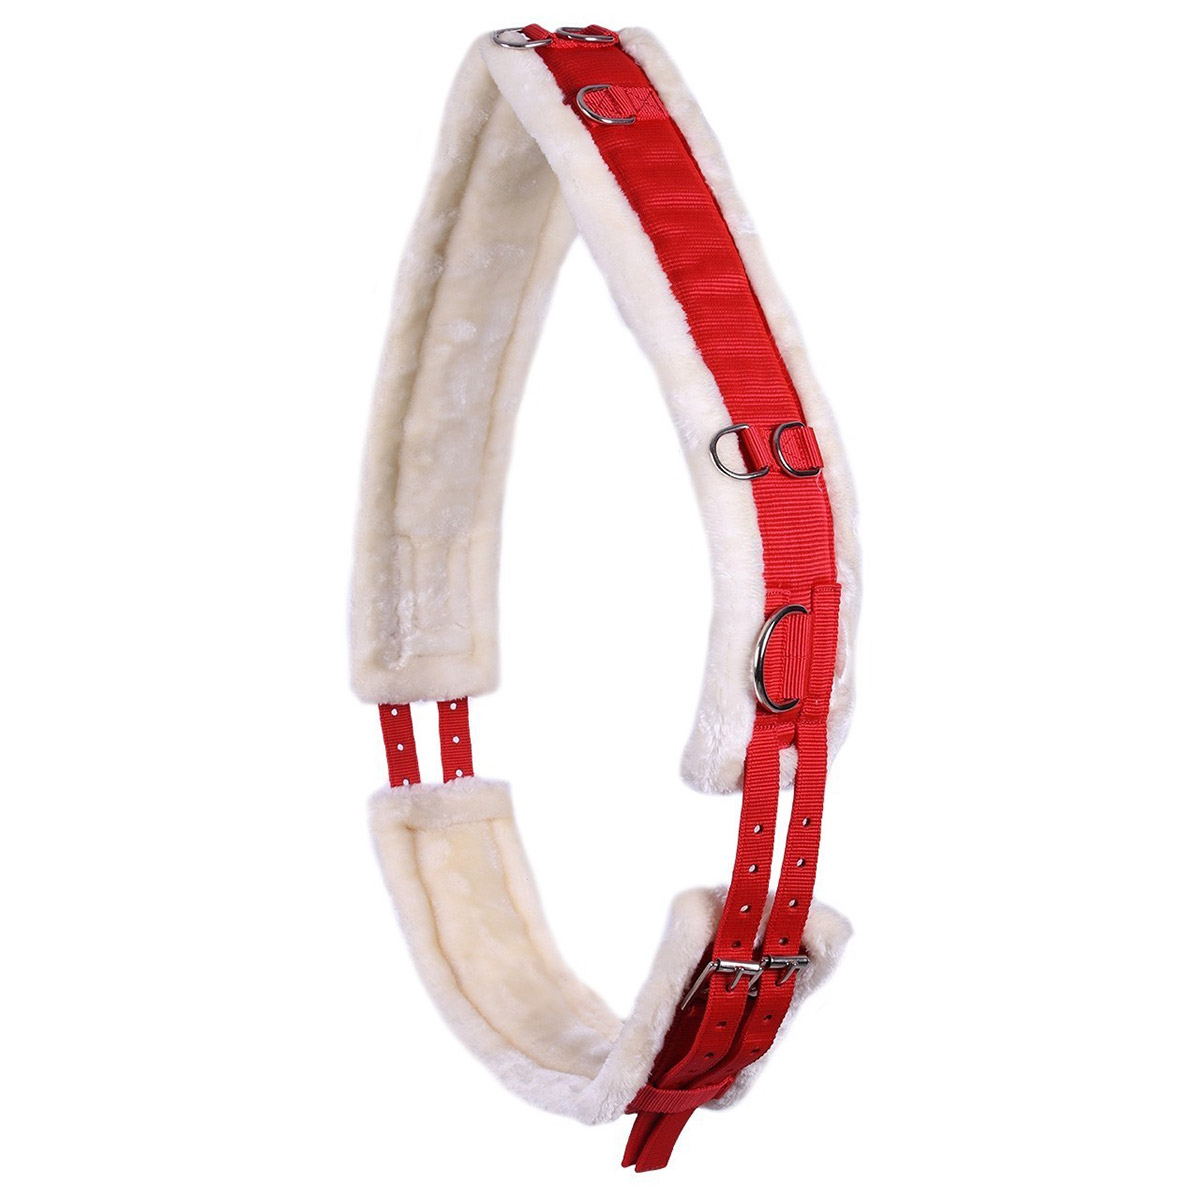 Rijlegging Rebel By Montar Lyla Siliconen, 34�in dark blue